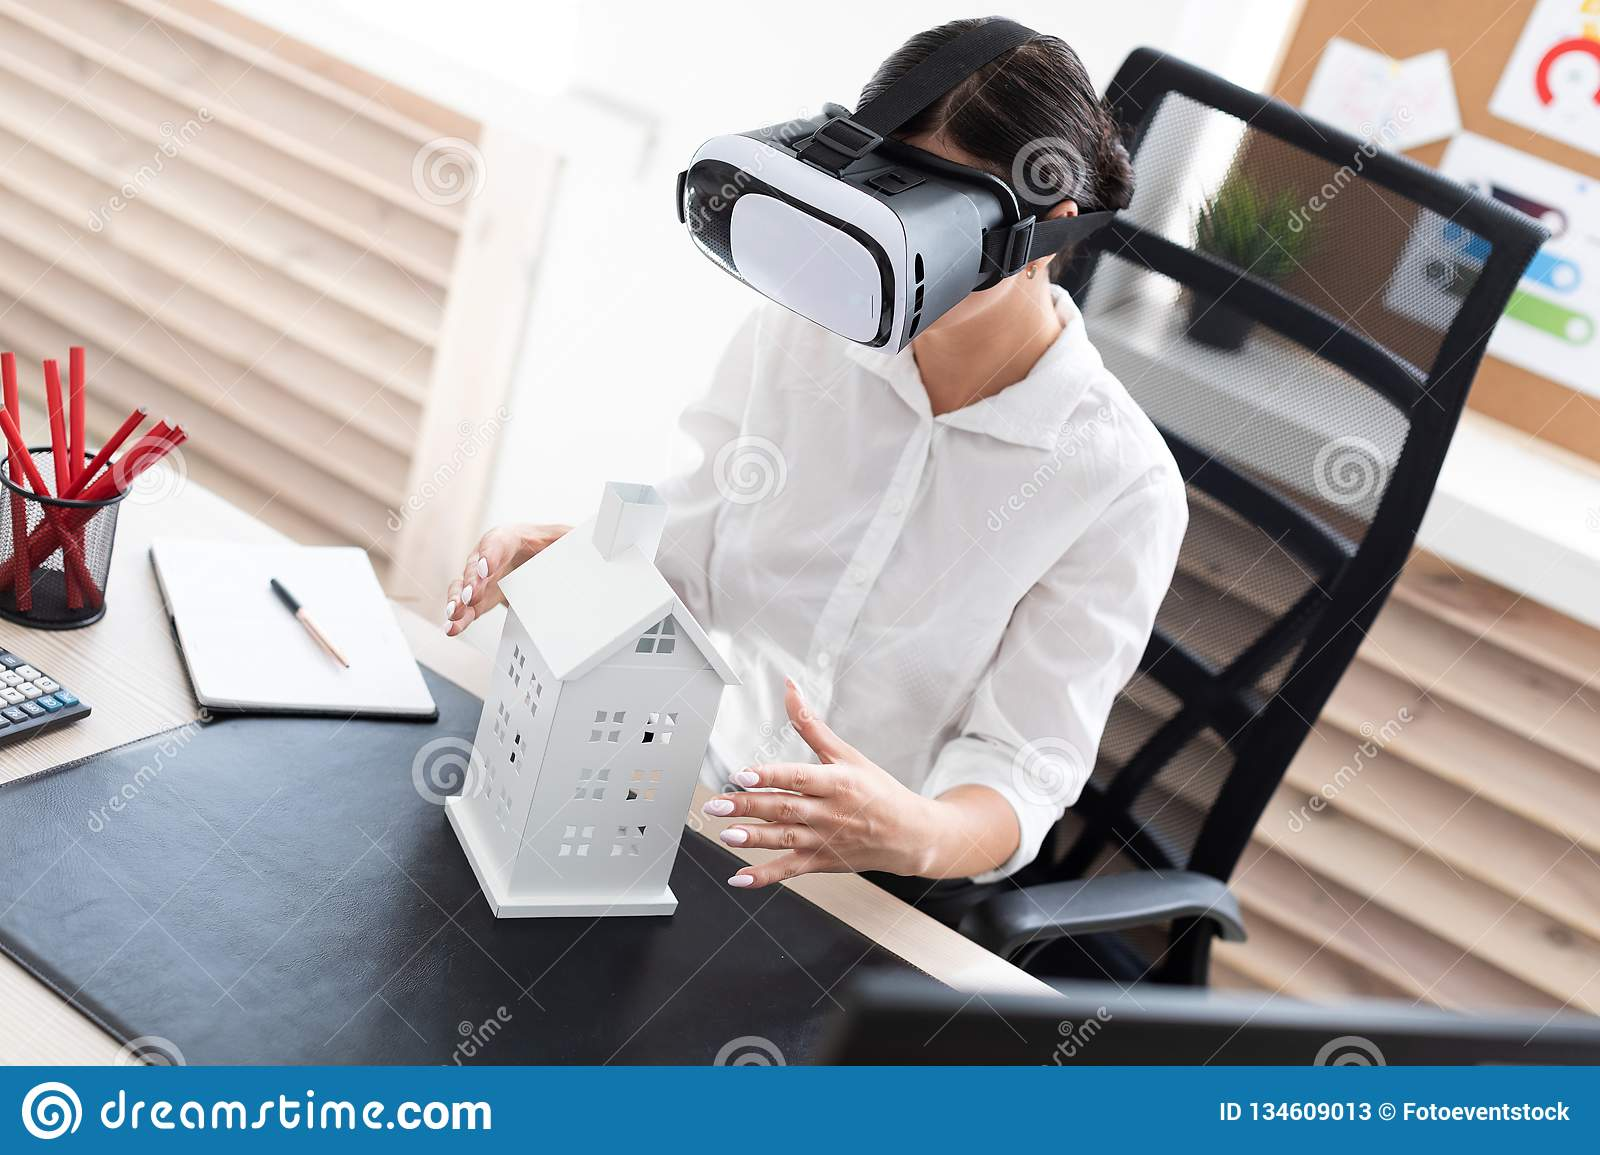 110 3d Young Teen Virtual Reality Glasses Vr Photos - Free